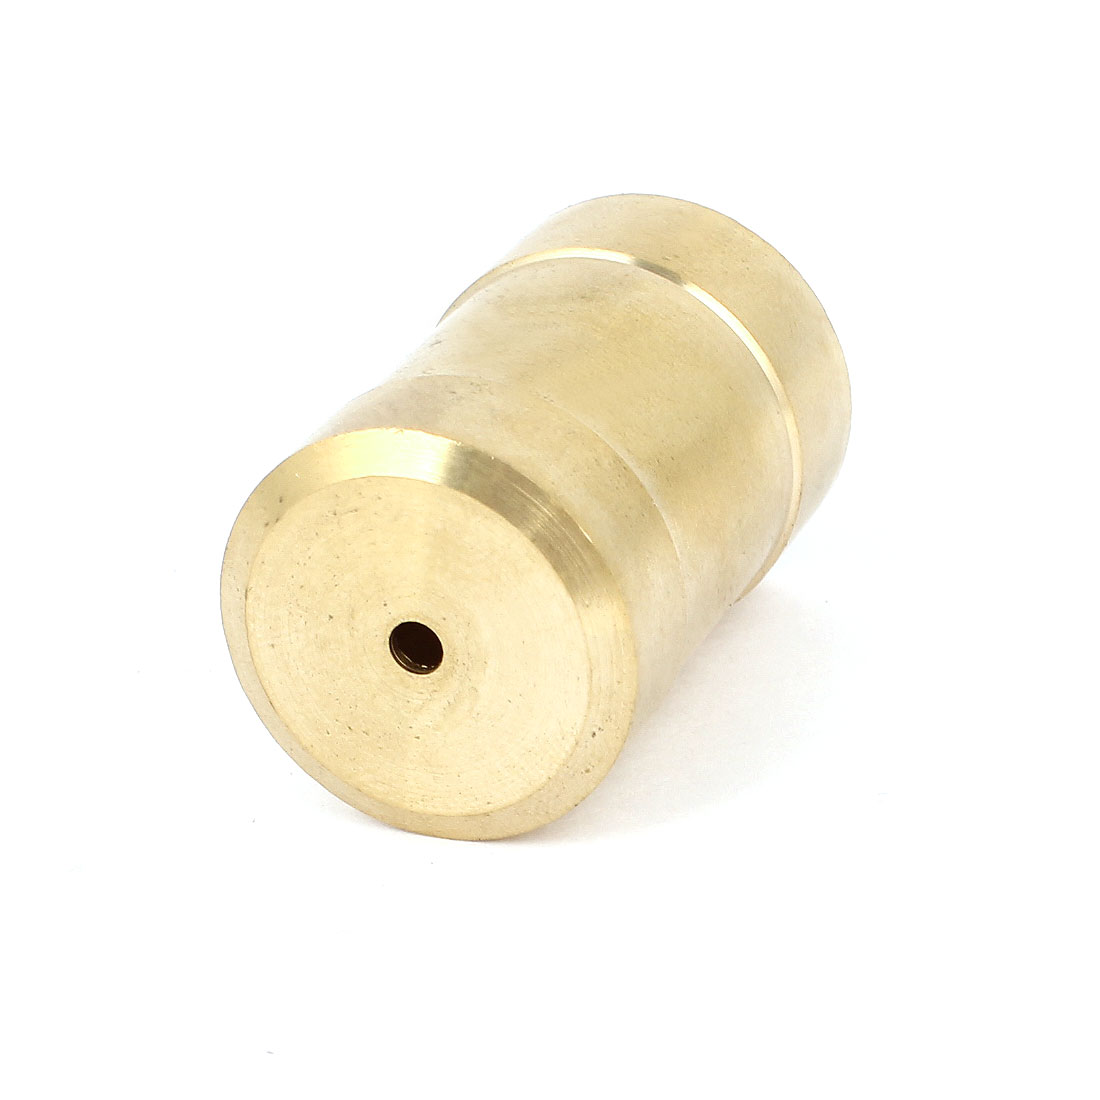 Cooling Dust Cleaning 19mm Female Thread Water Mist Spray Head Nozzle Brass Tone